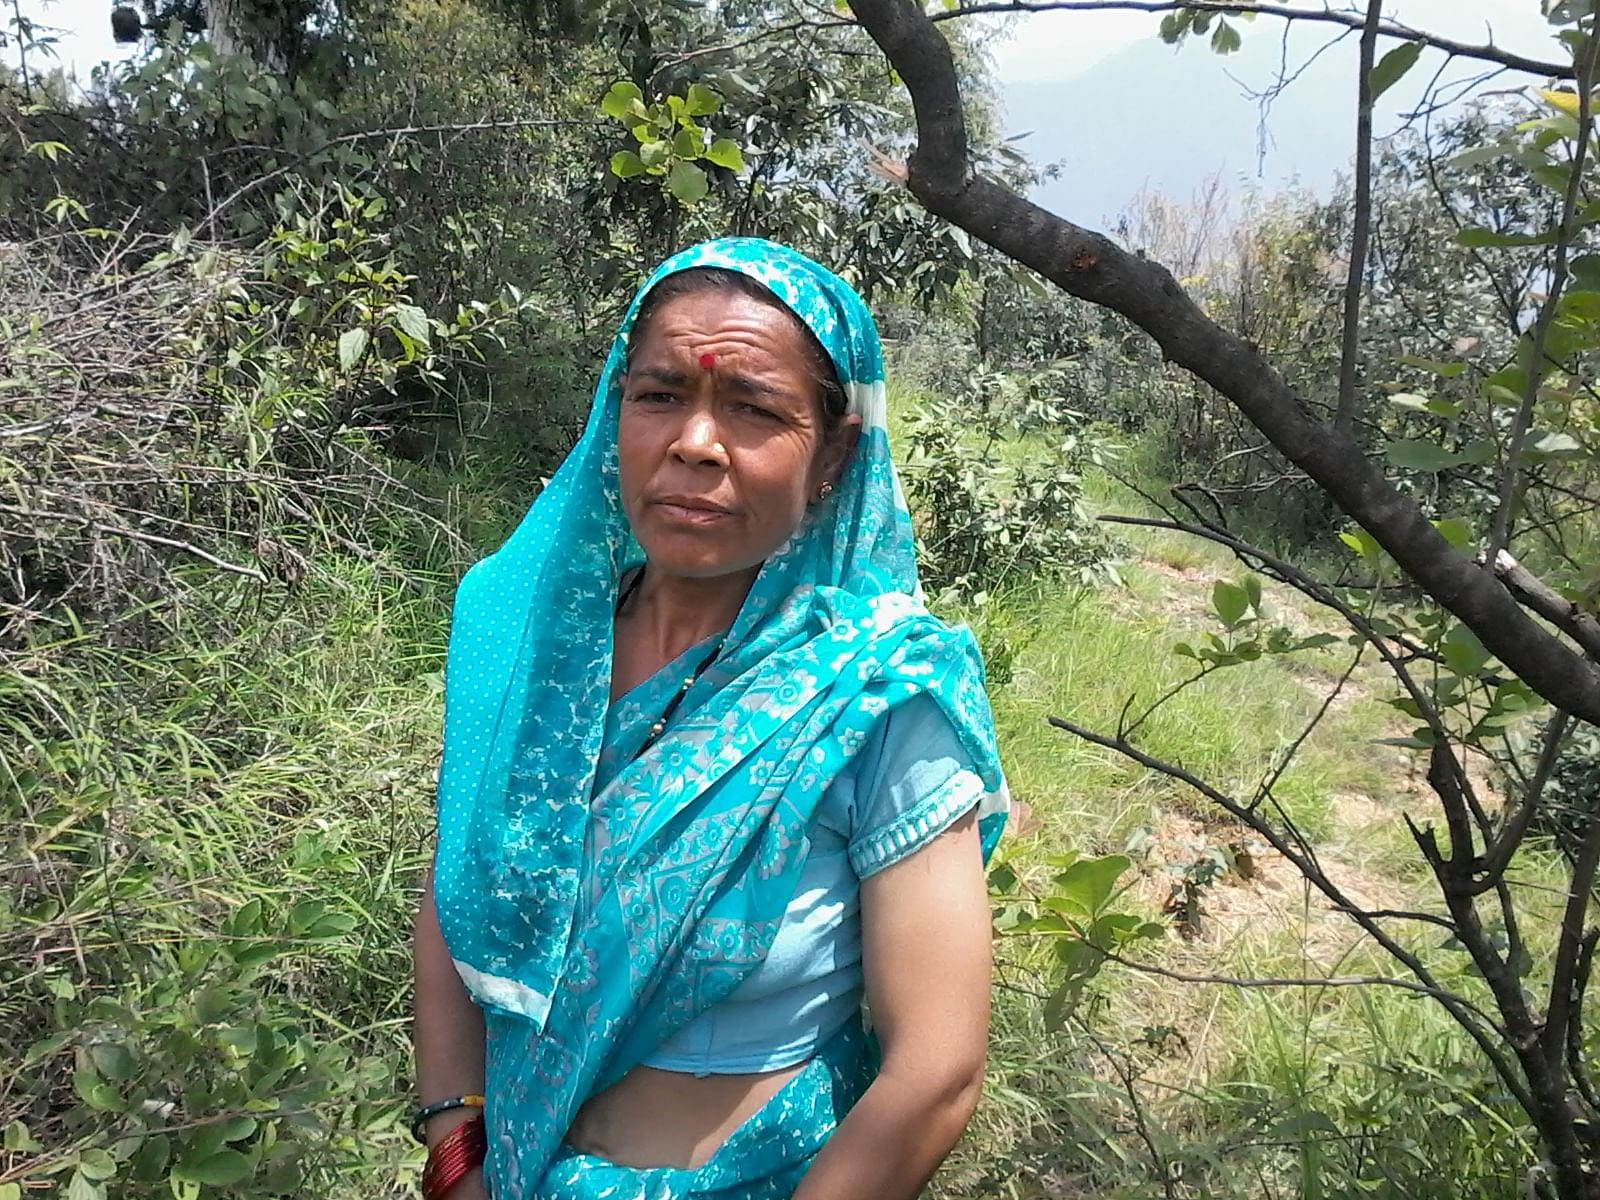 Sulochana Rawat, another resident of Bagoli village, has been an active participant of the Maiti Andolan under which women plant trees to mark momentous occasions, particularly the marriage of a daughter. (Credit: Nitin Jugran Bahuguna\WFS)